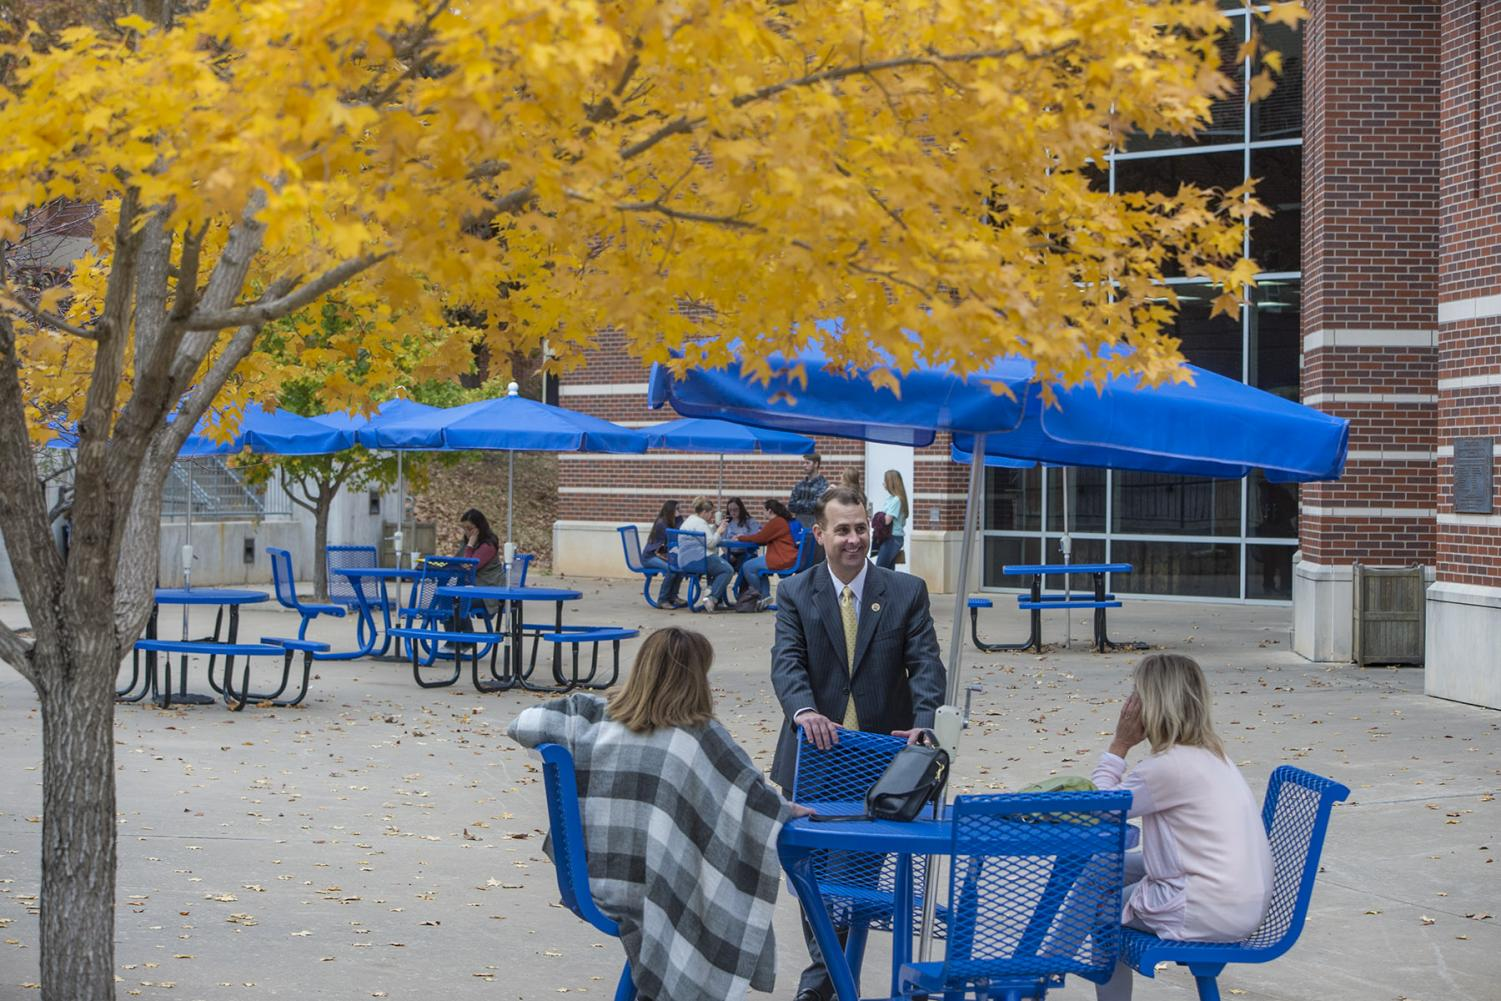 Dr. Kyle Stafford, the Vice President of University Advancement, speaks with prospective students outside of the Student Union between break out sessions.